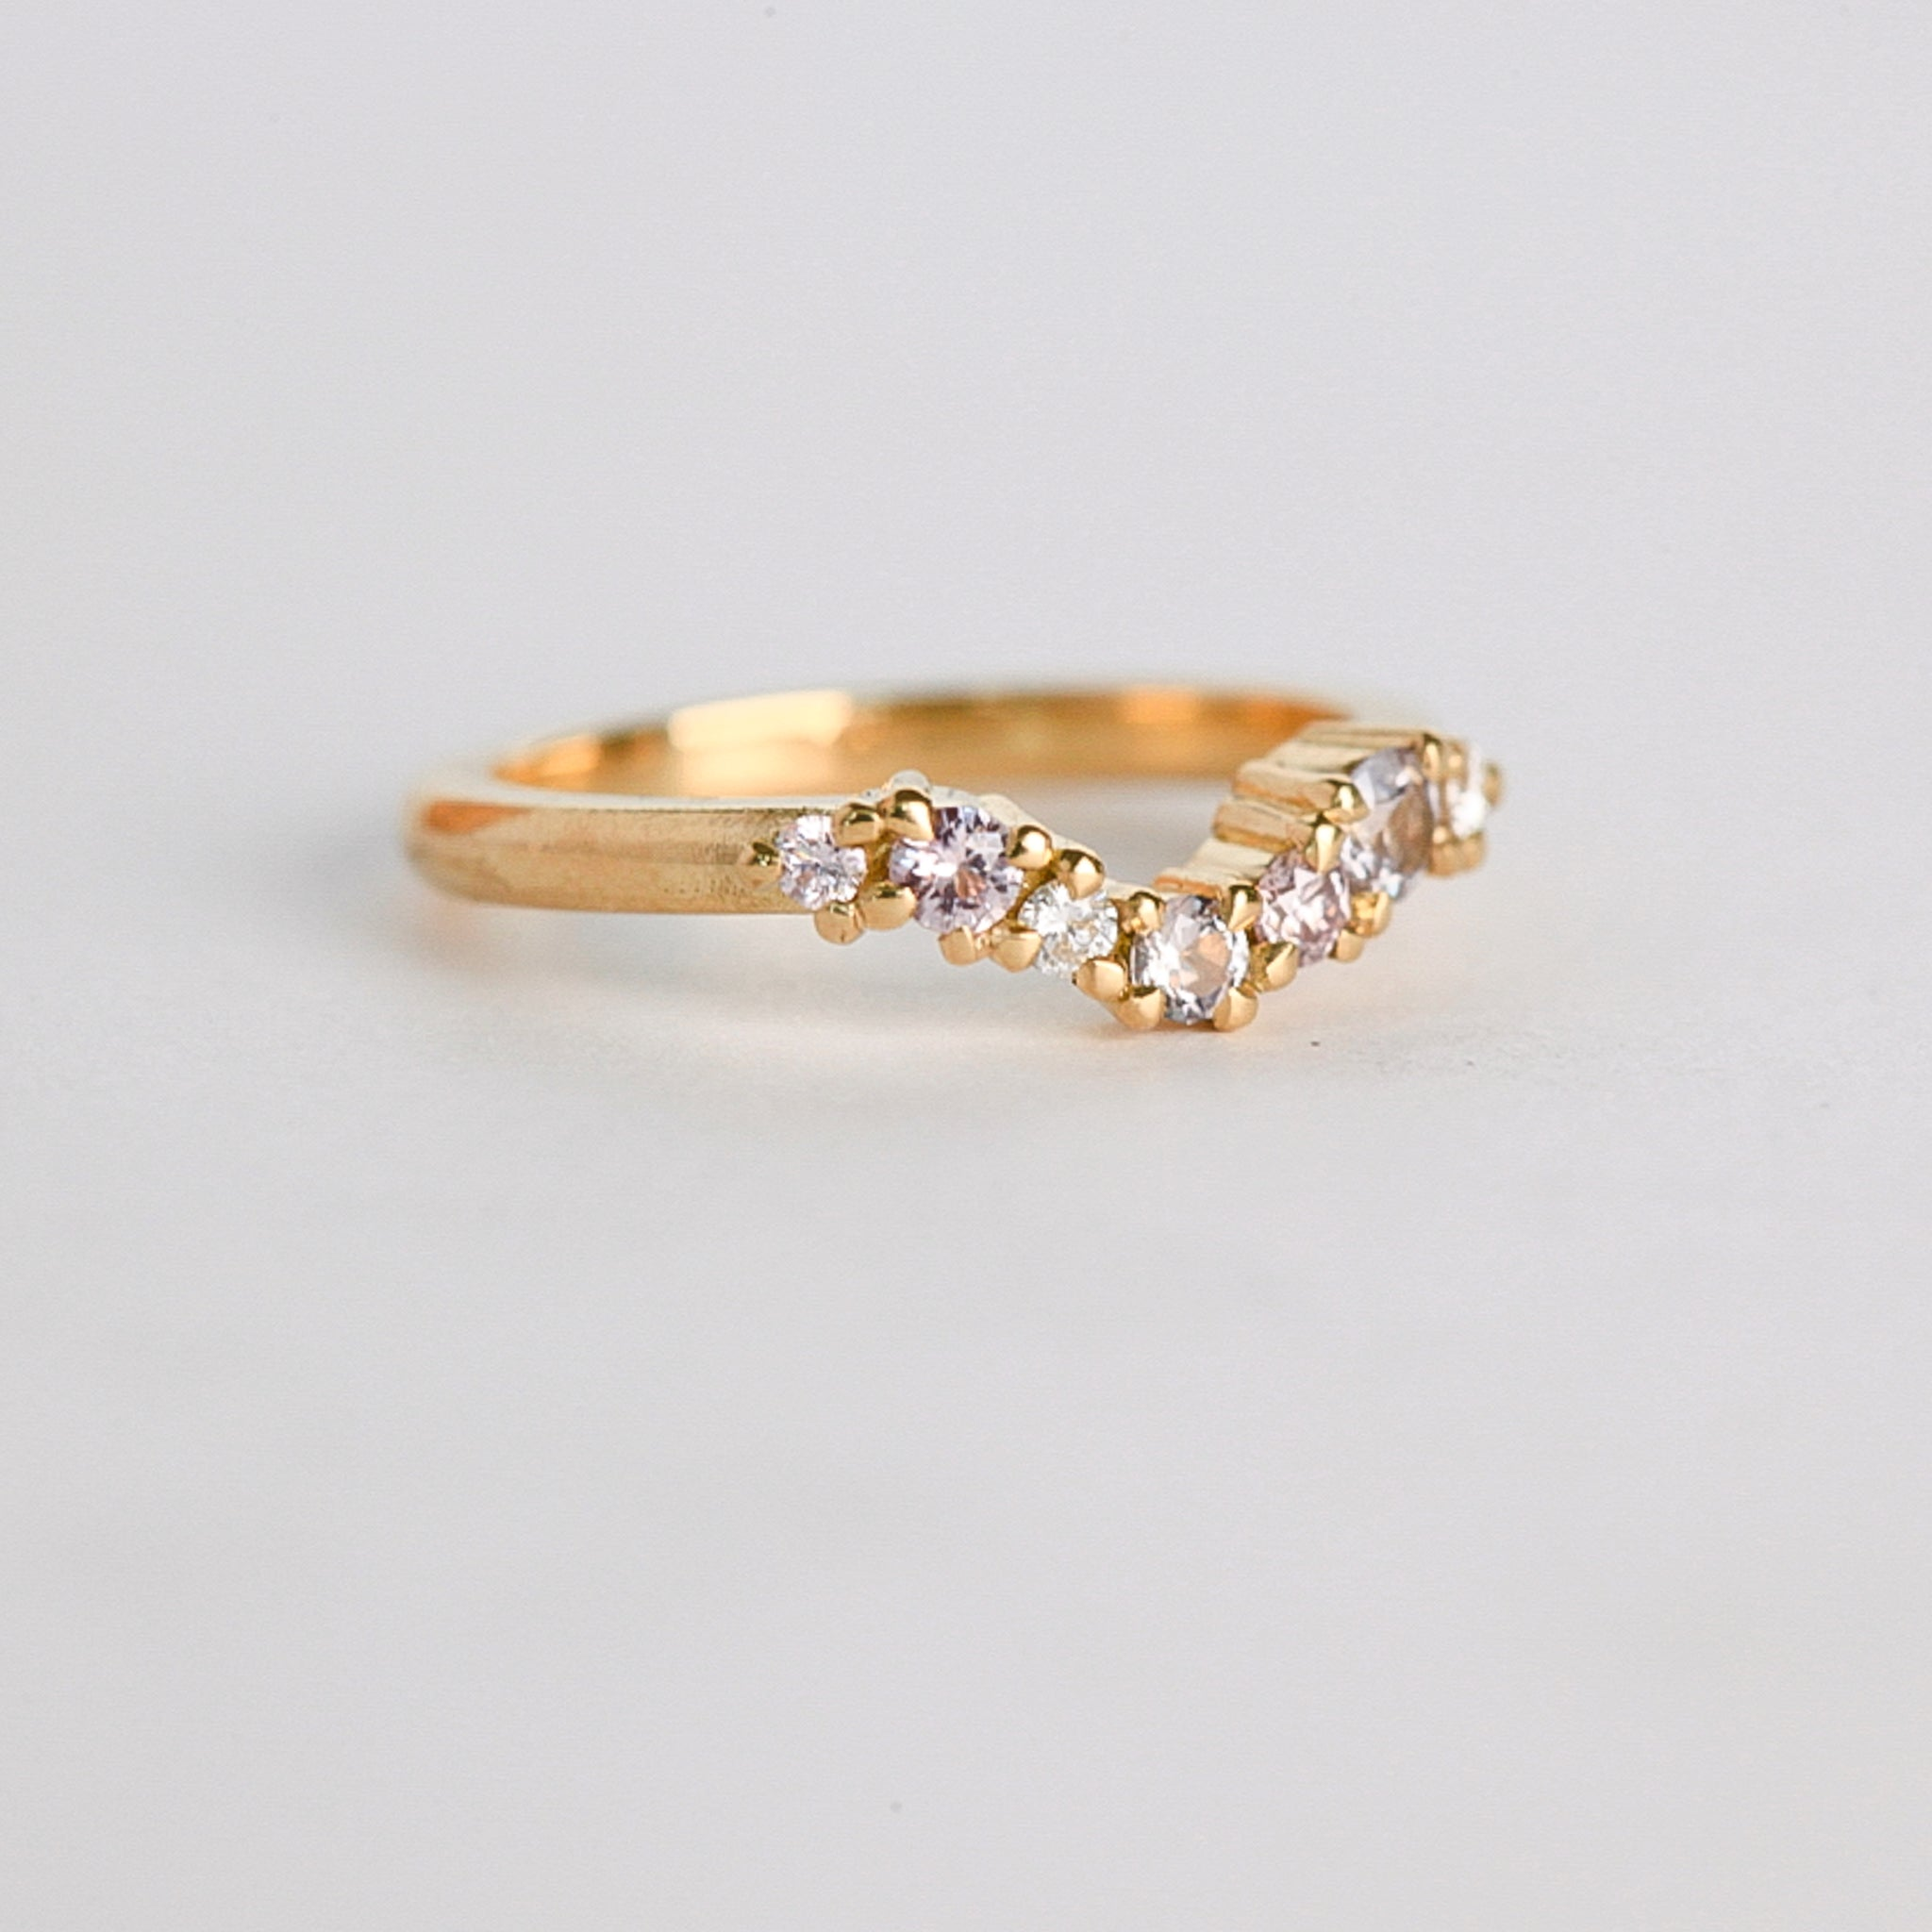 Made in Melbourne, 18ct yellow gold curved engagement ring with a row of diamonds.